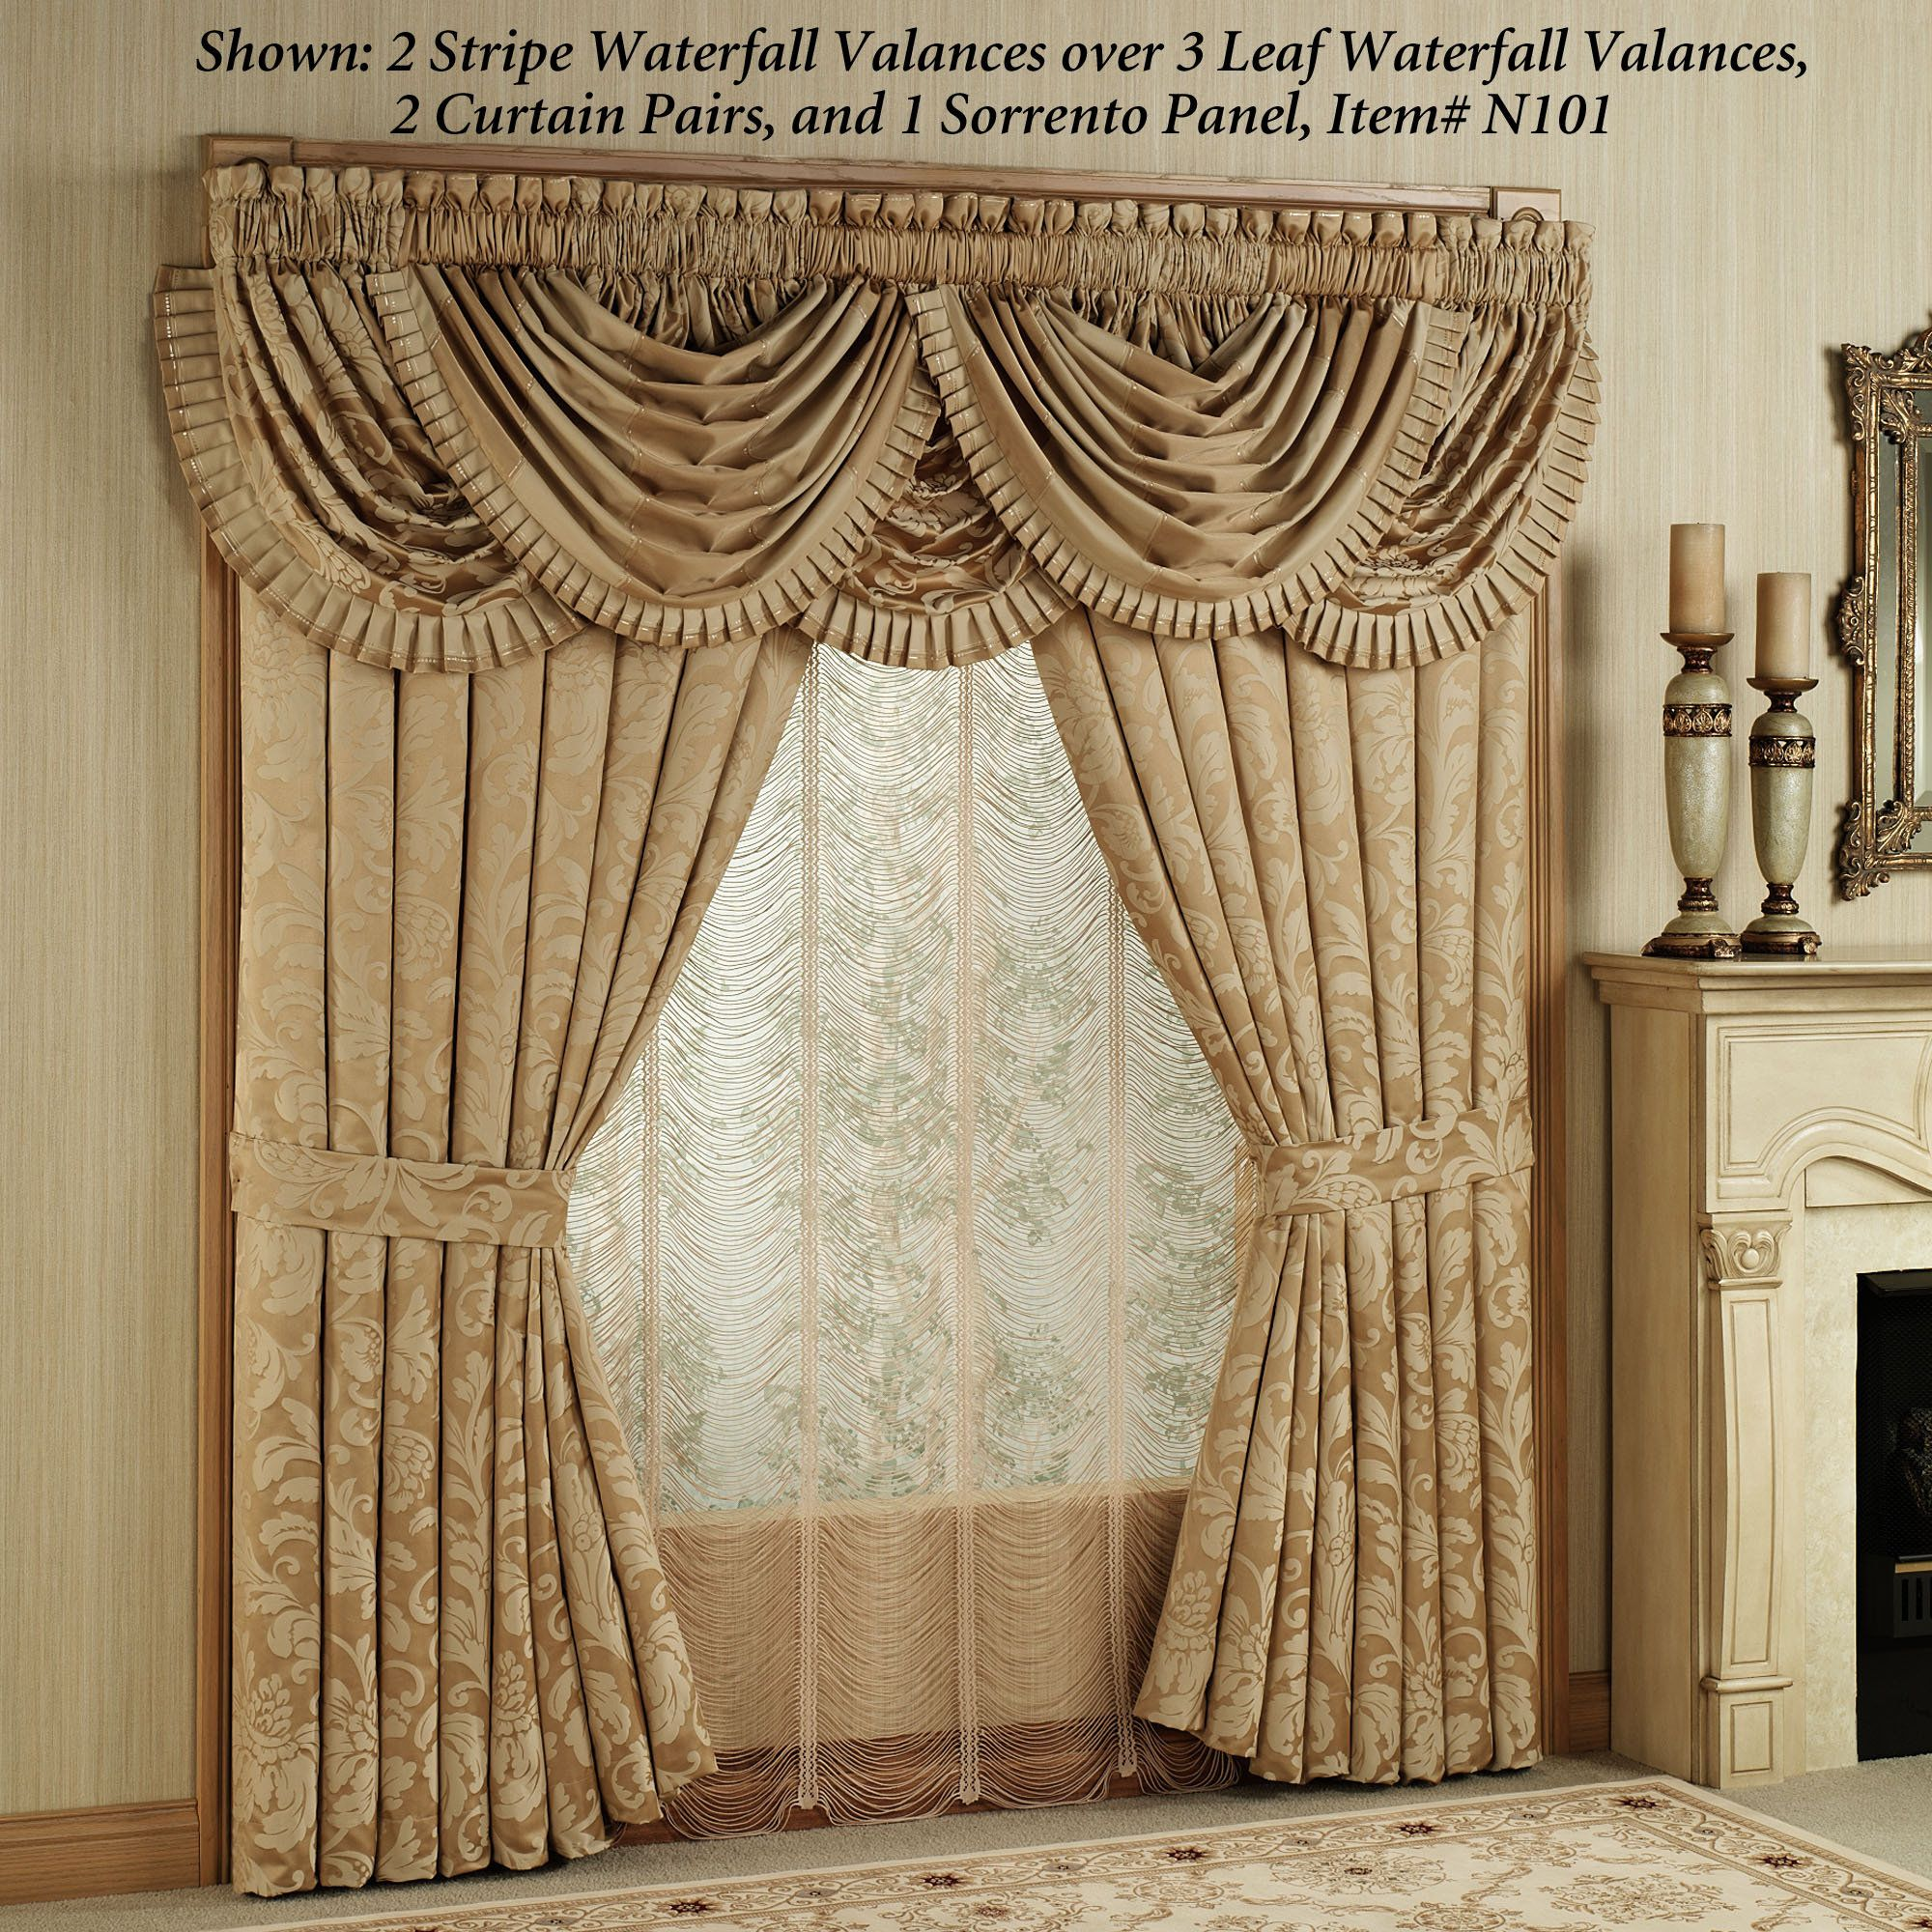 drapery wisteria and p to panels valance arbor expand swag valances lace click curtain pair